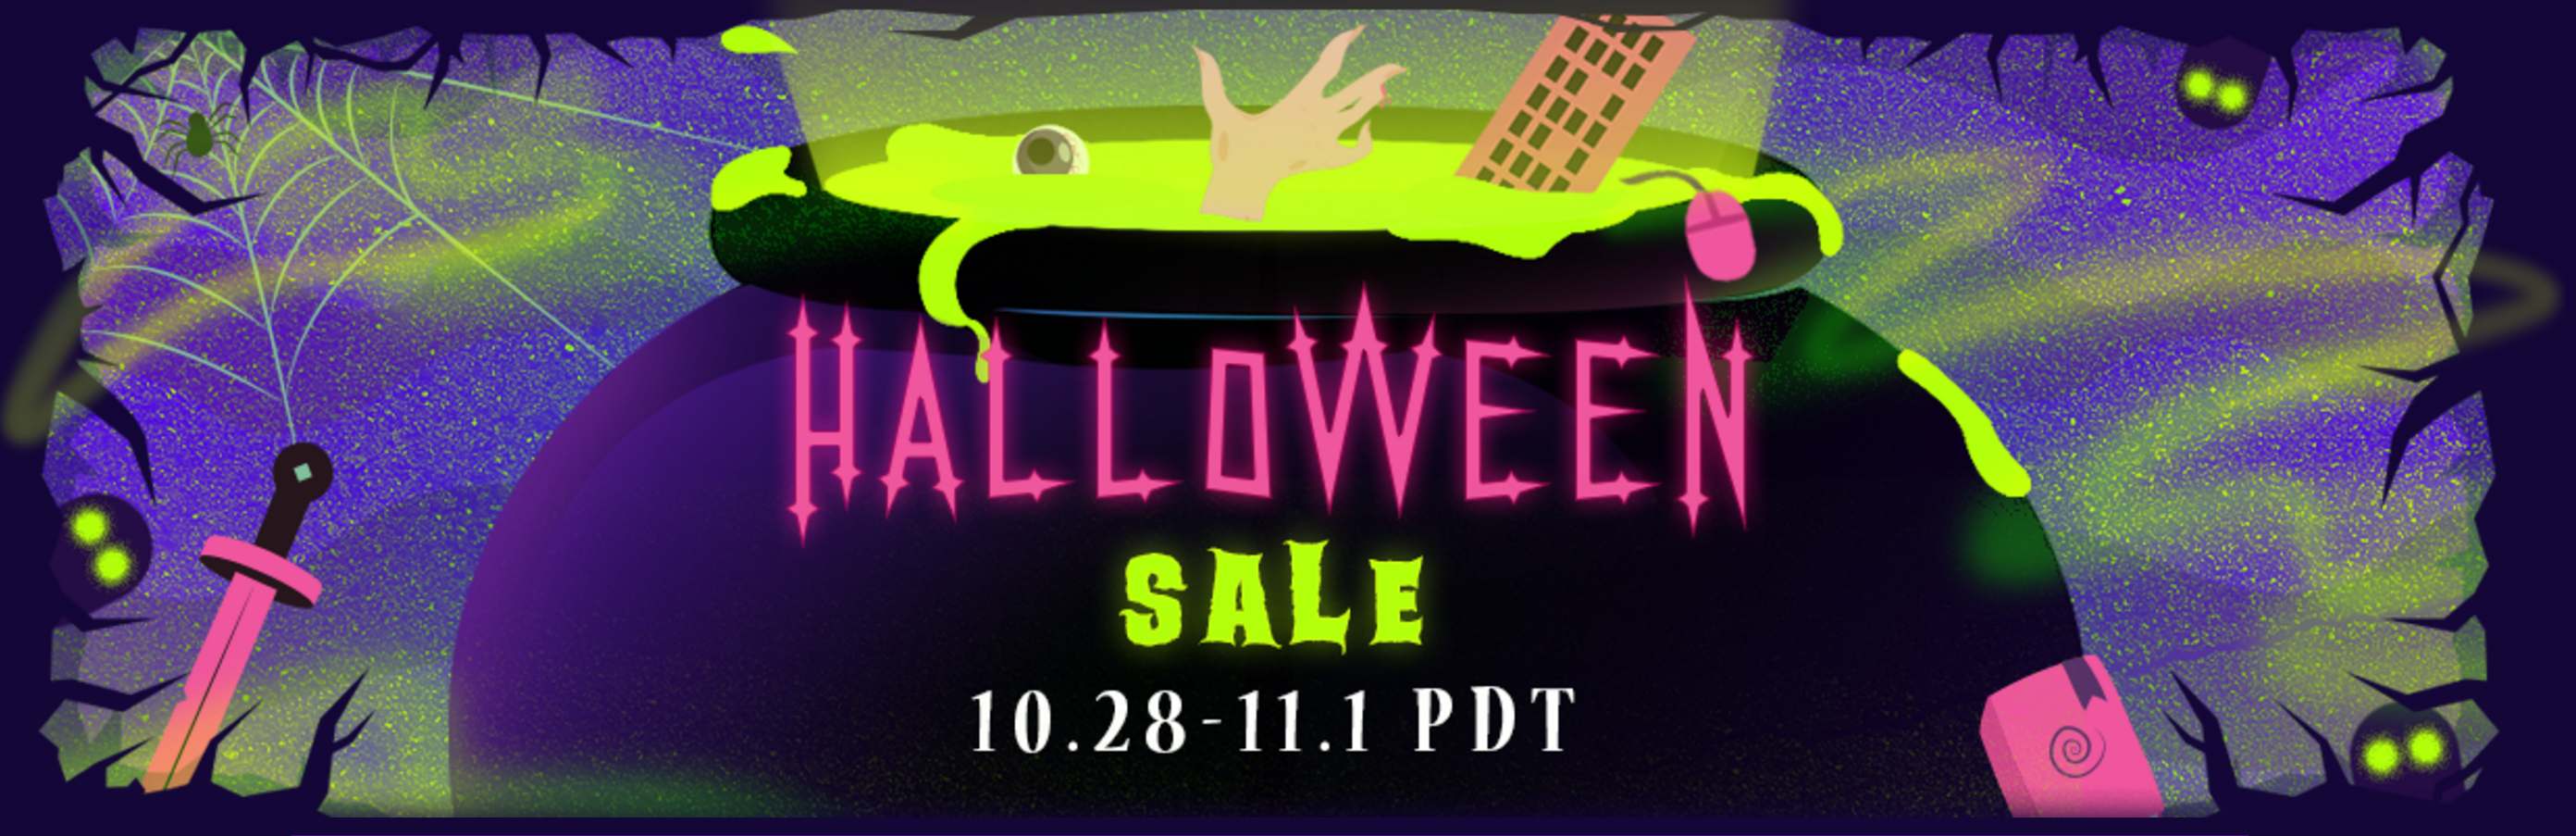 steam halloween sales 2016 - Halloween Sales